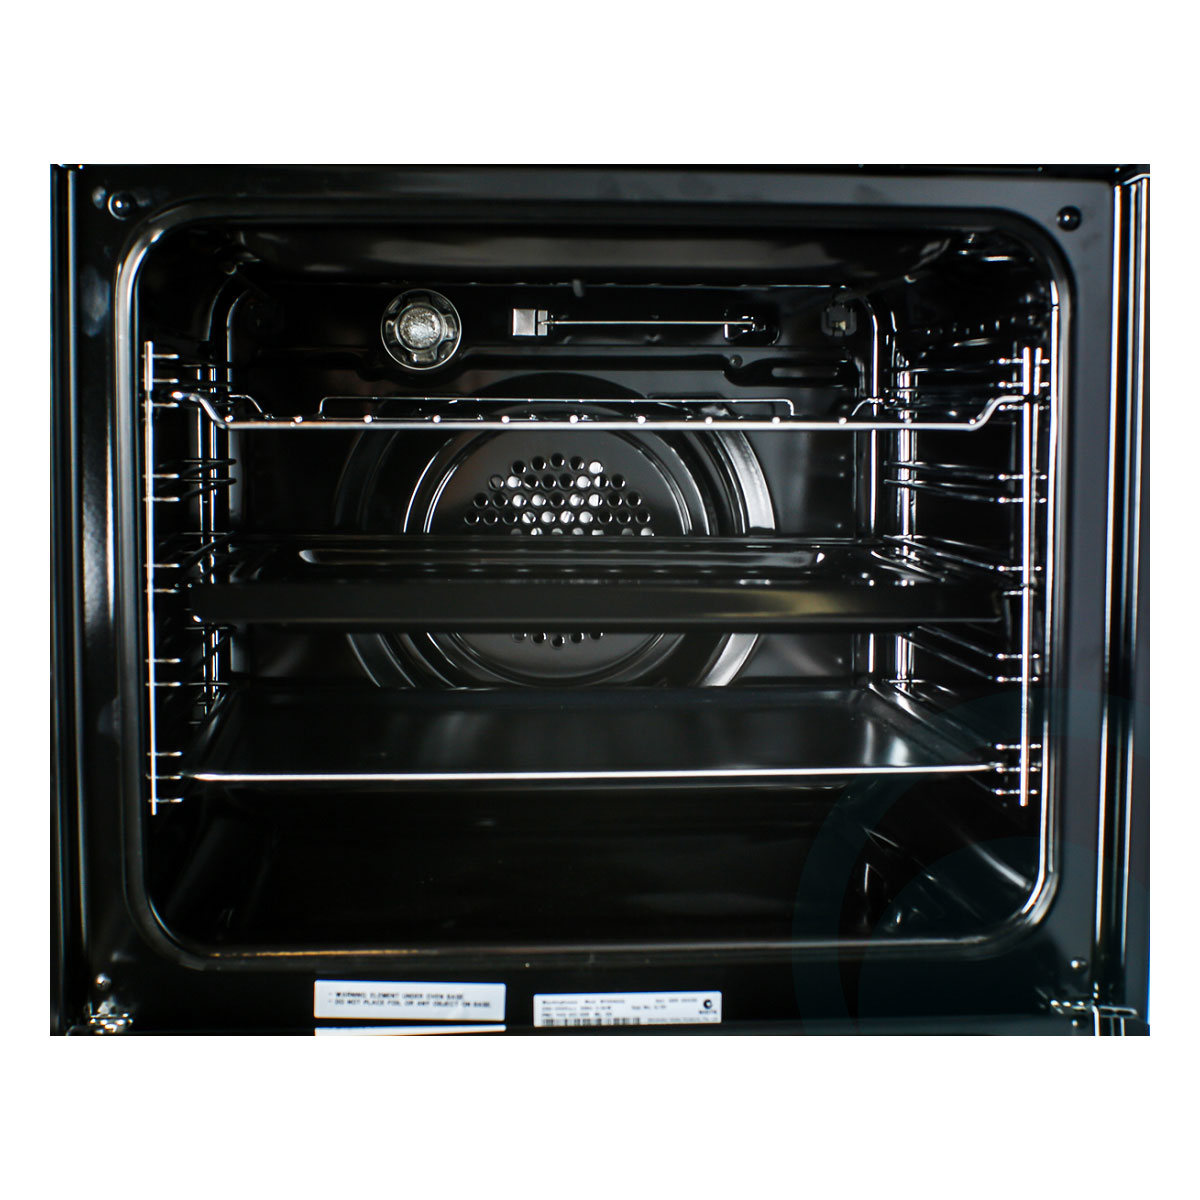 Westinghouse WVE665S Built-In Oven 27011